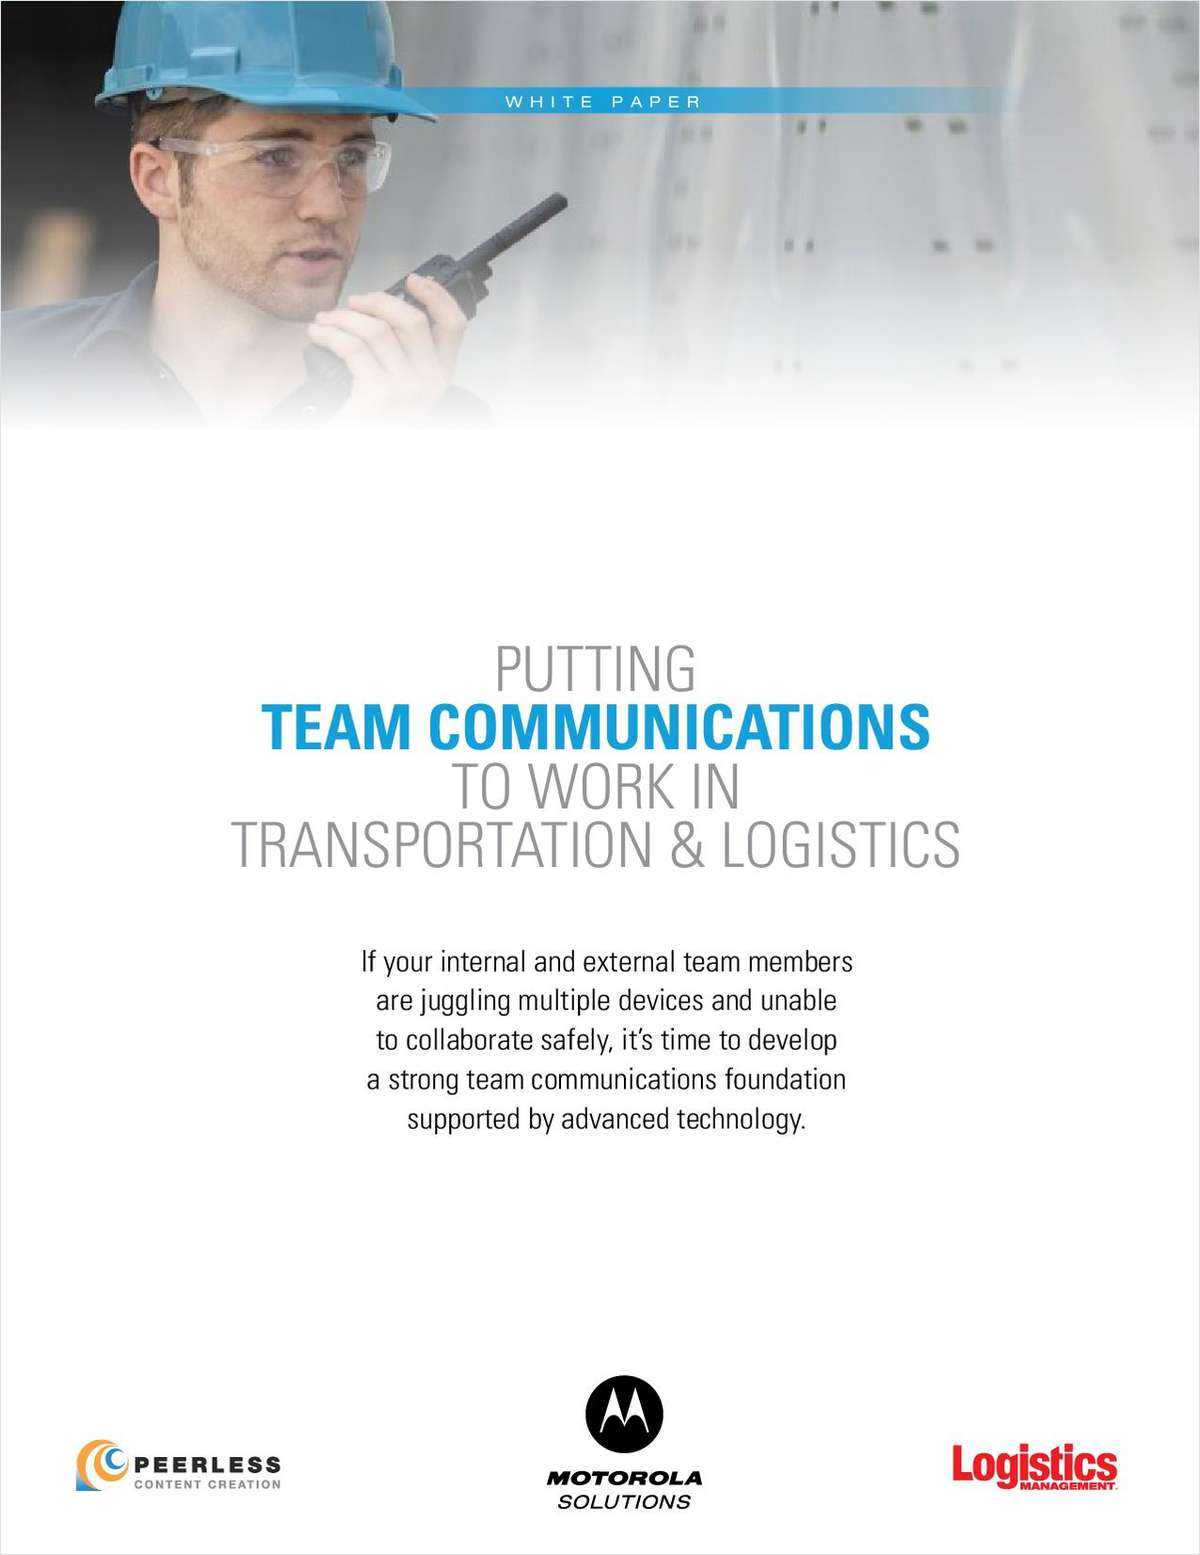 Putting Team Communications to Work in Transportation & Logistics